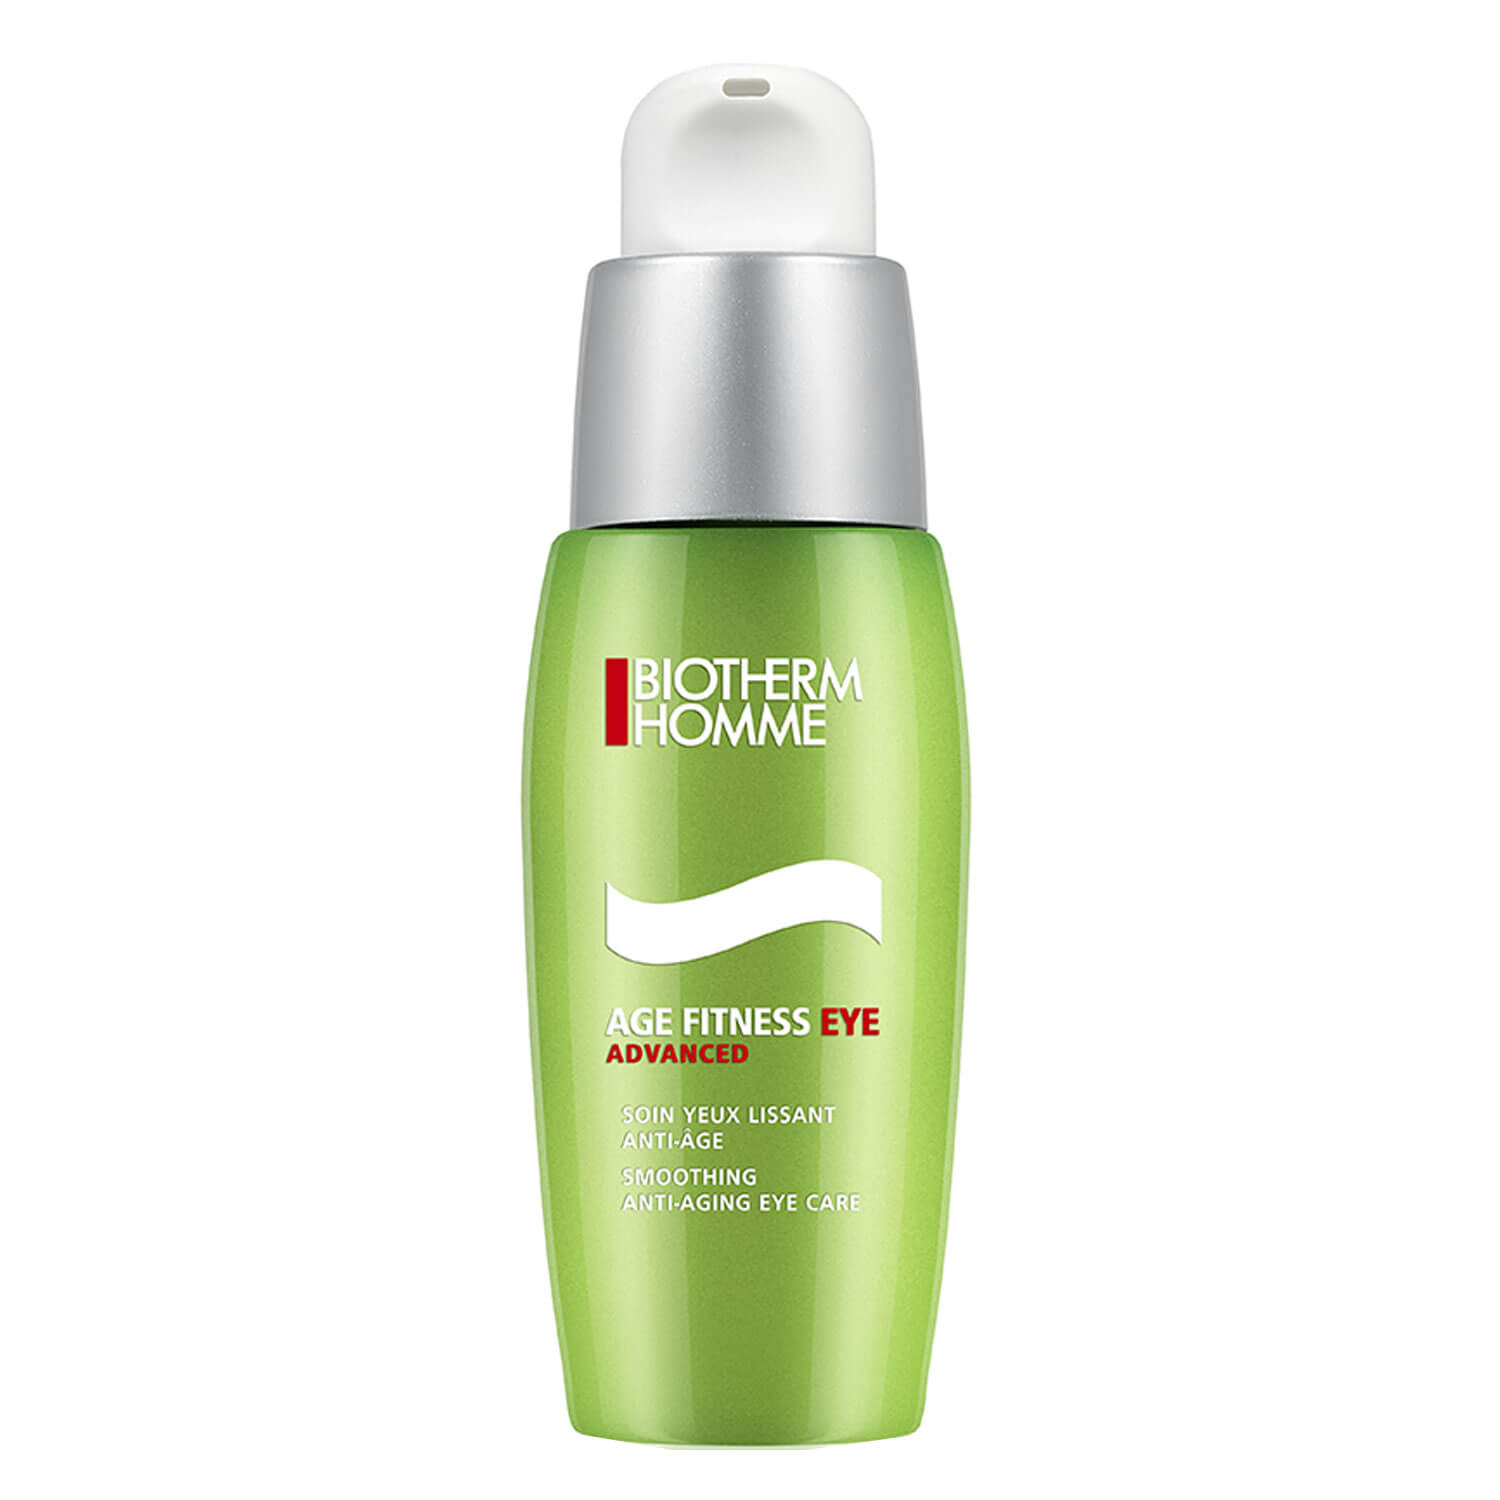 Biotherm Homme - Age Fitness Eye Advanced - 15ml